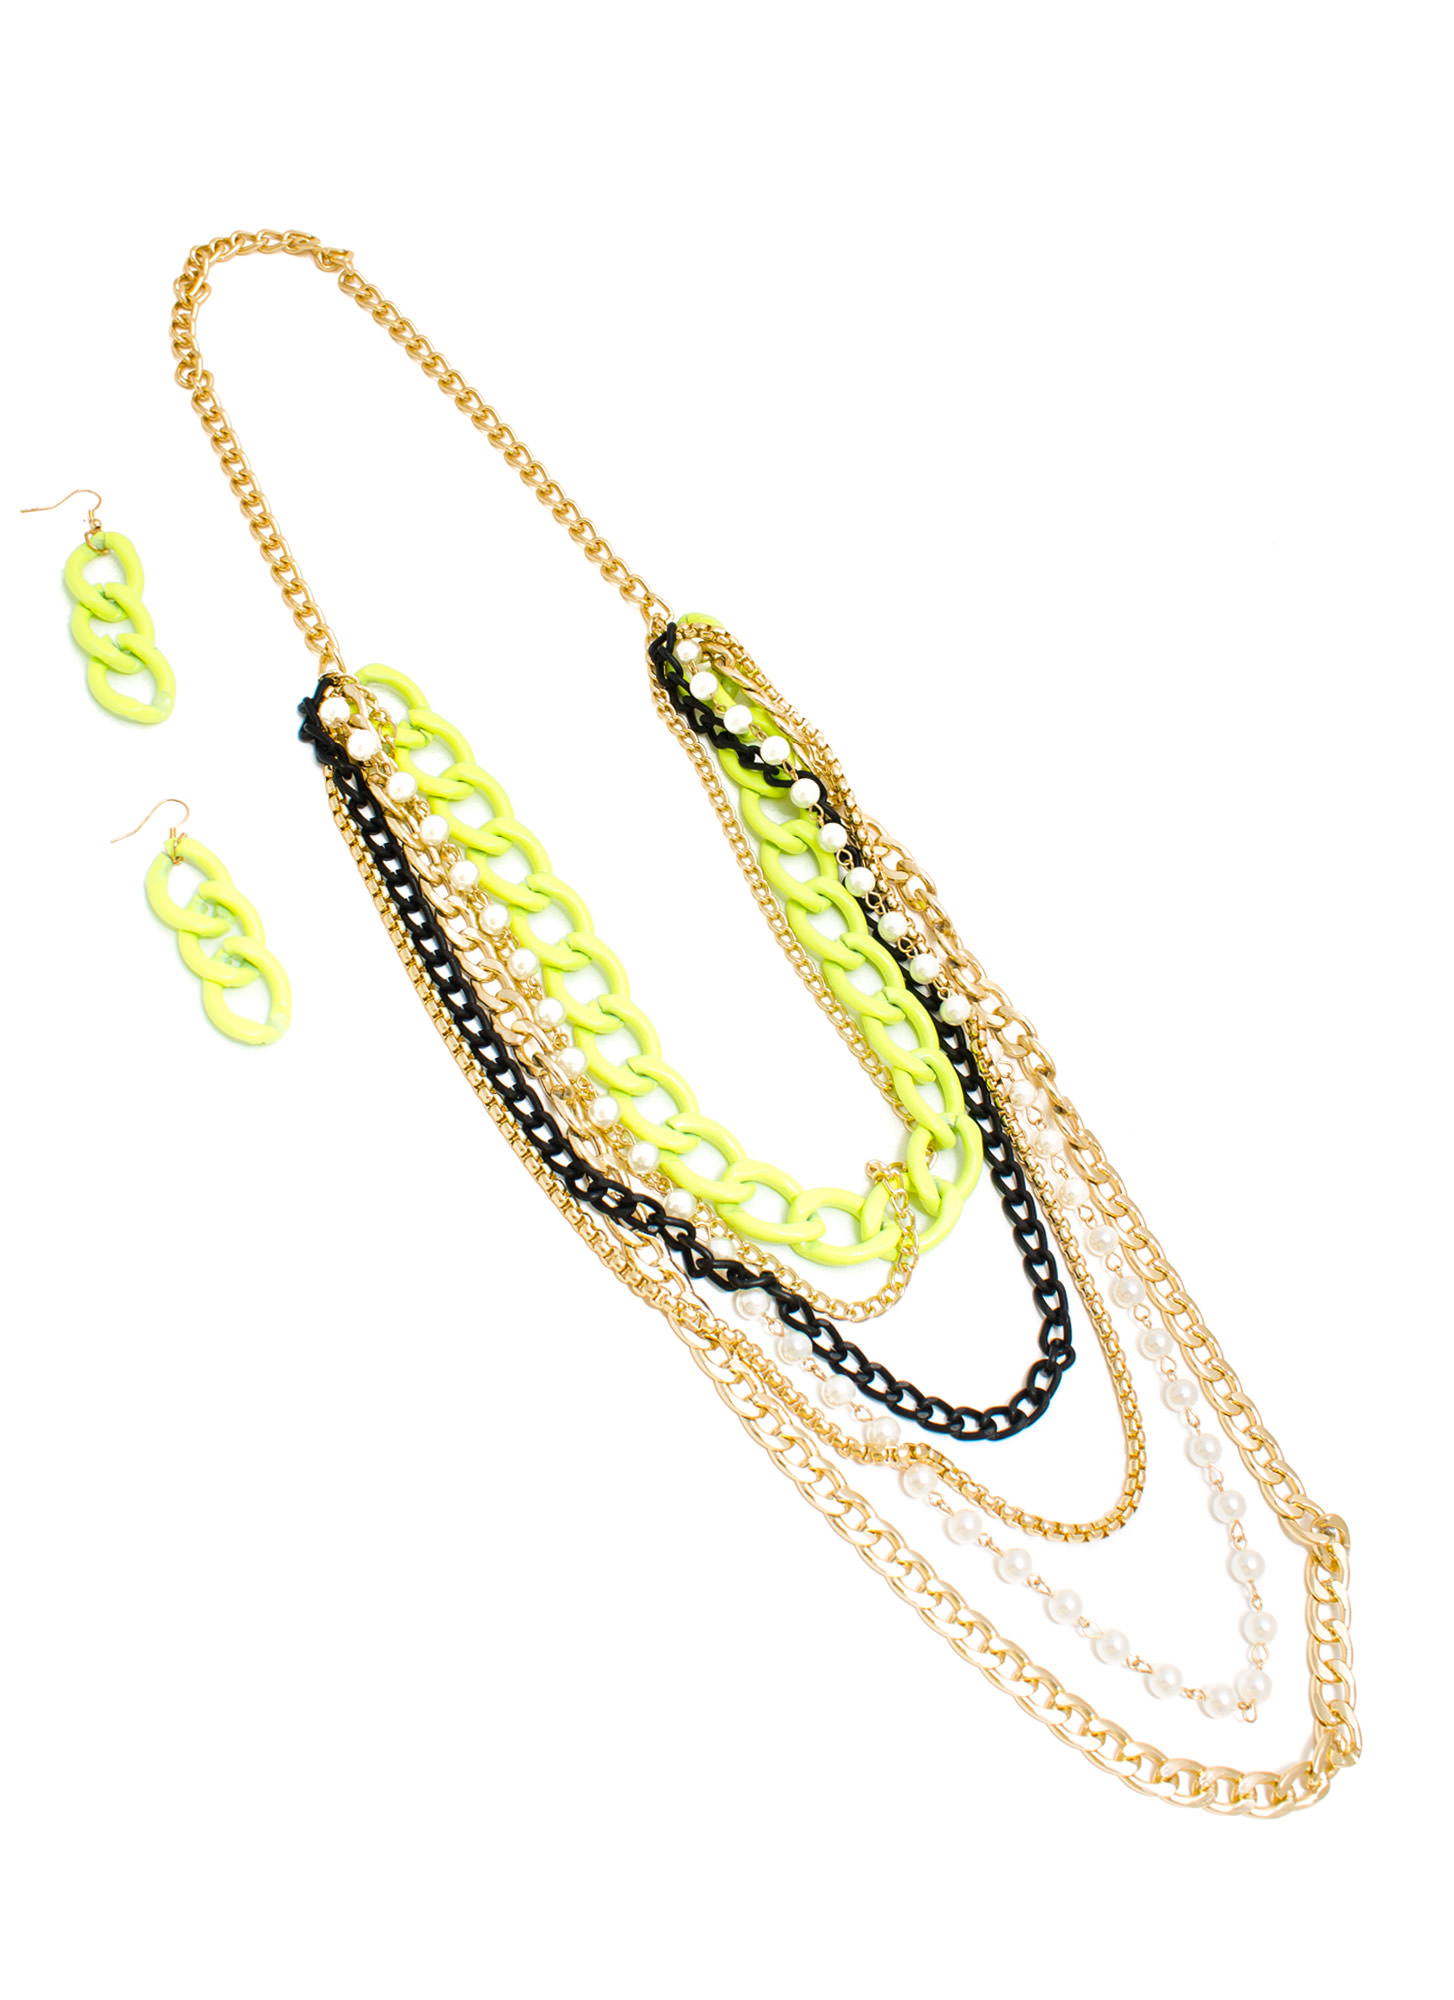 Finish It Faux Pearl 'N Chain Necklace Set GLDYLW